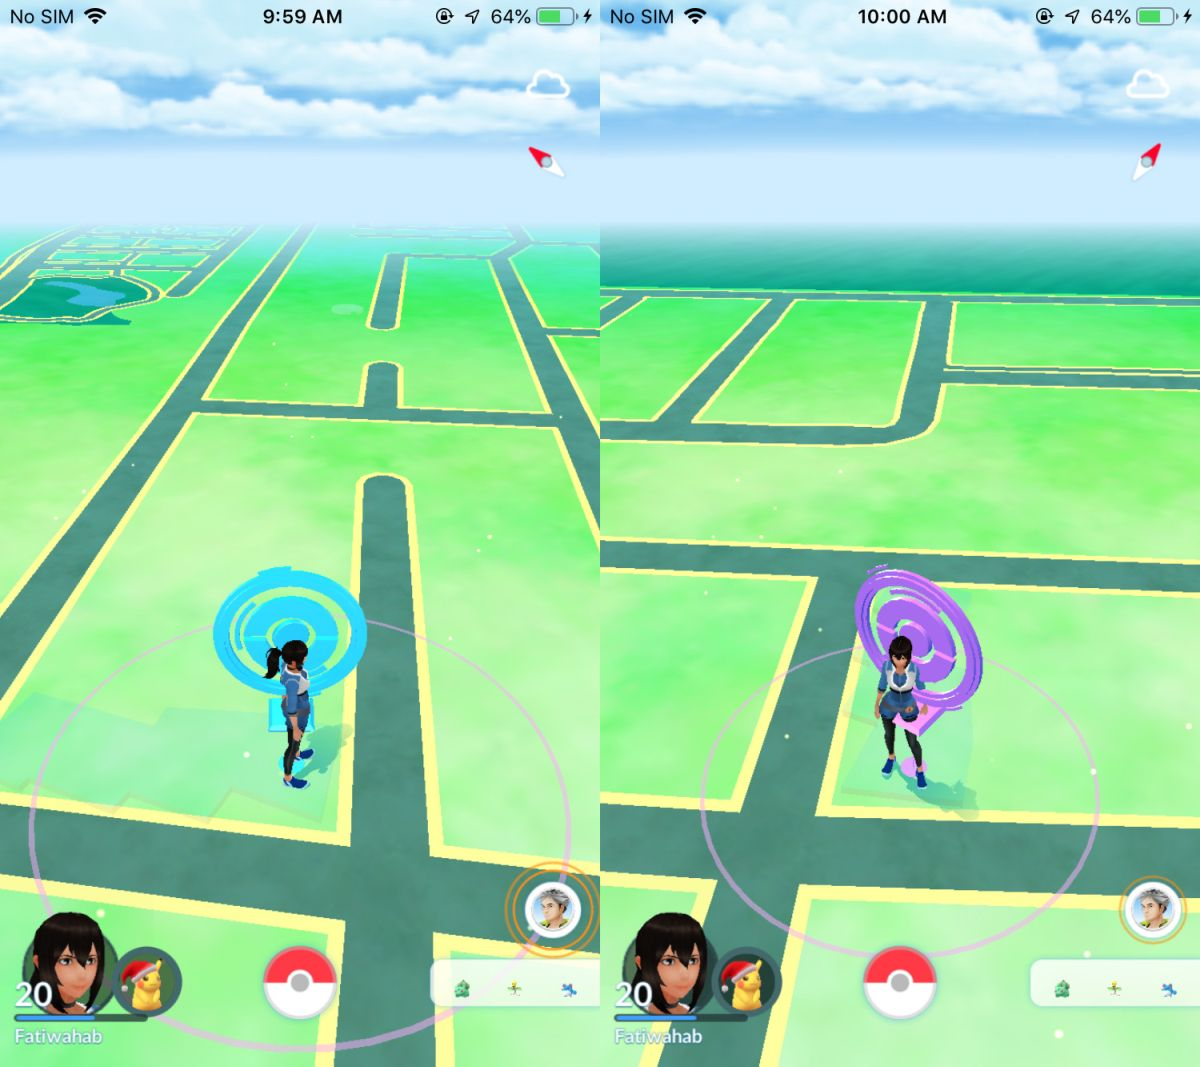 pokemon go location spoof access gyms and pokestops during the lock down 3 Pokèmon Go location spoof: Access gyms and Pokèstops during the lock down